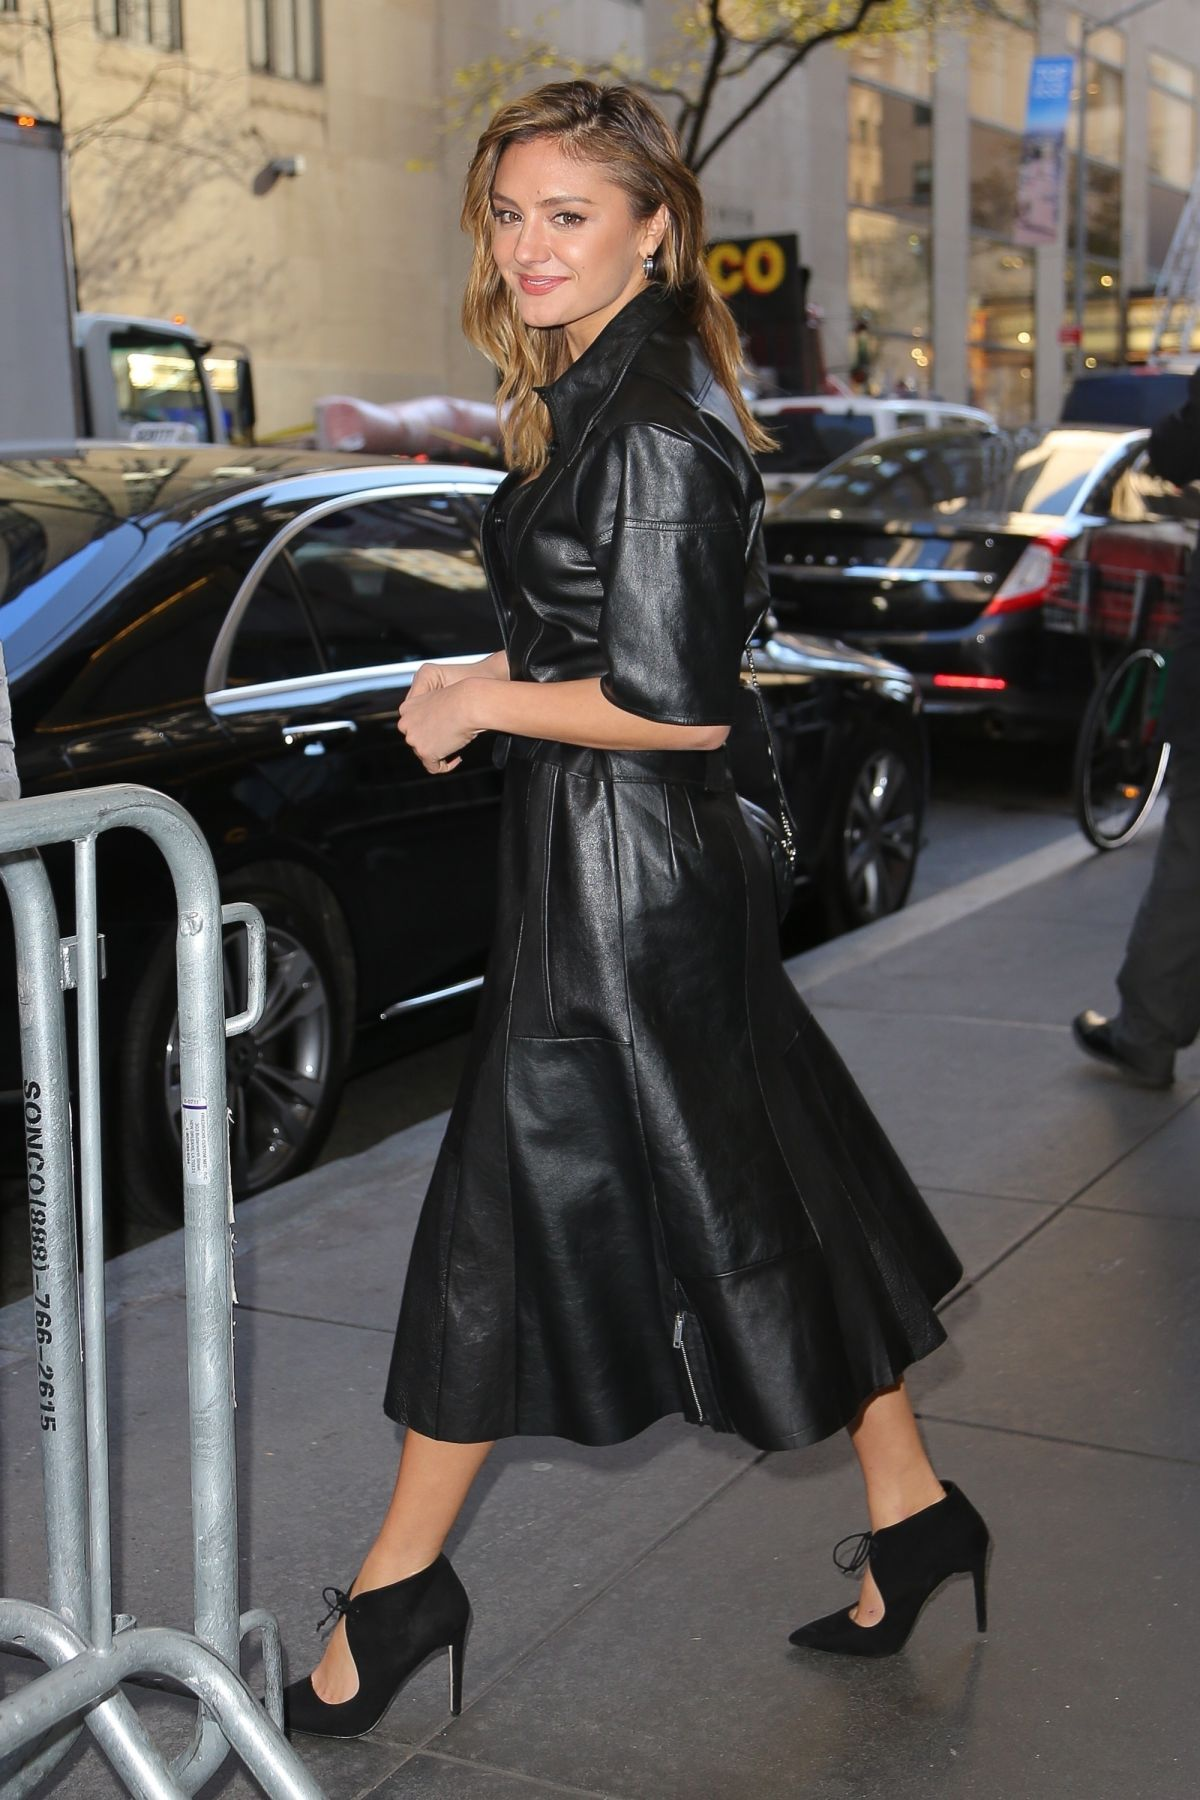 christina evangeline looks stunning in black leather as